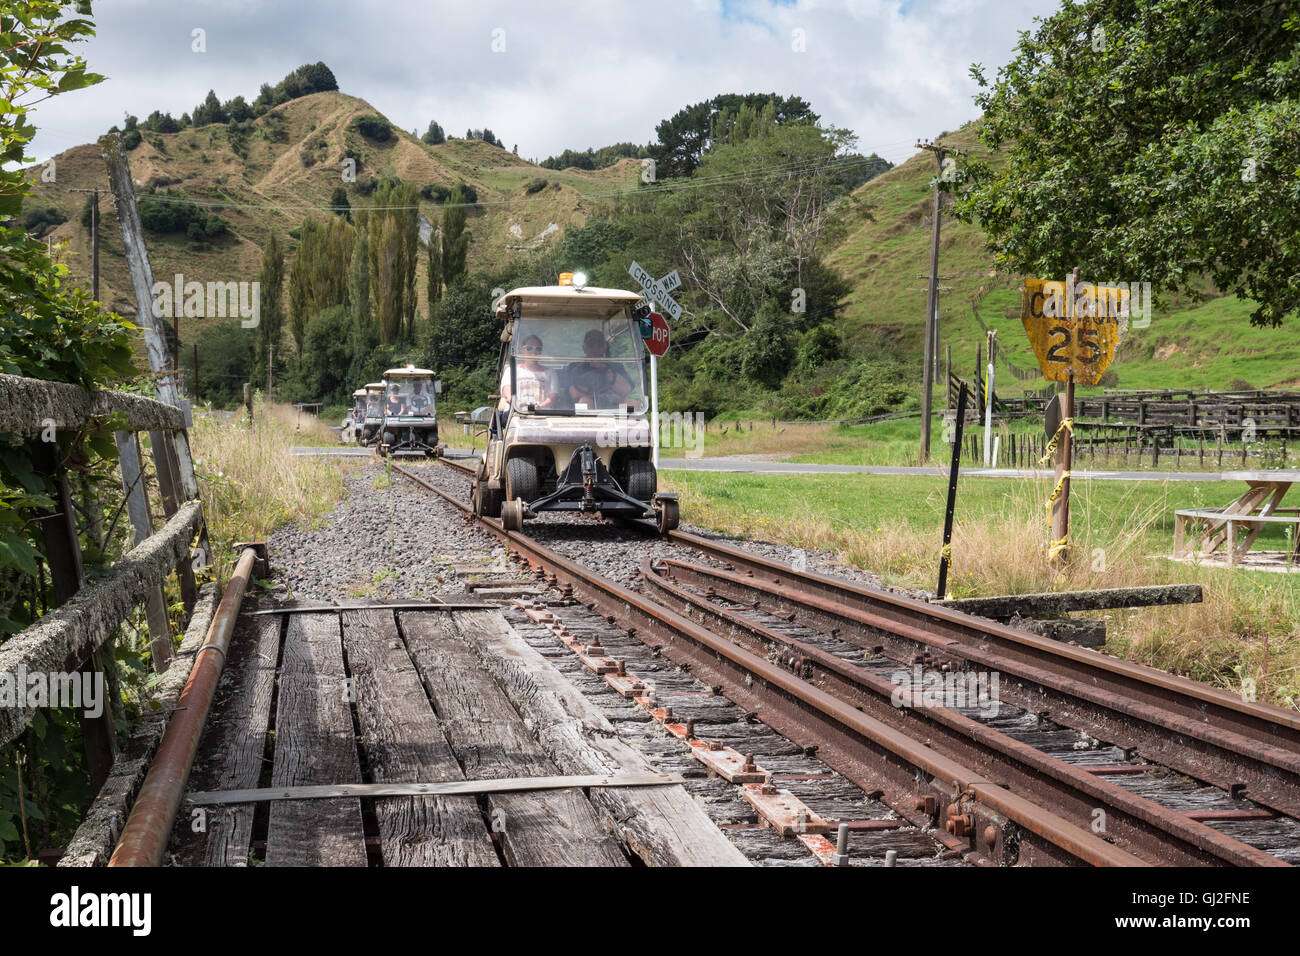 Forgotten world railway,Whangamomona  Taranaki, North Island, New Zealand. - Stock Image